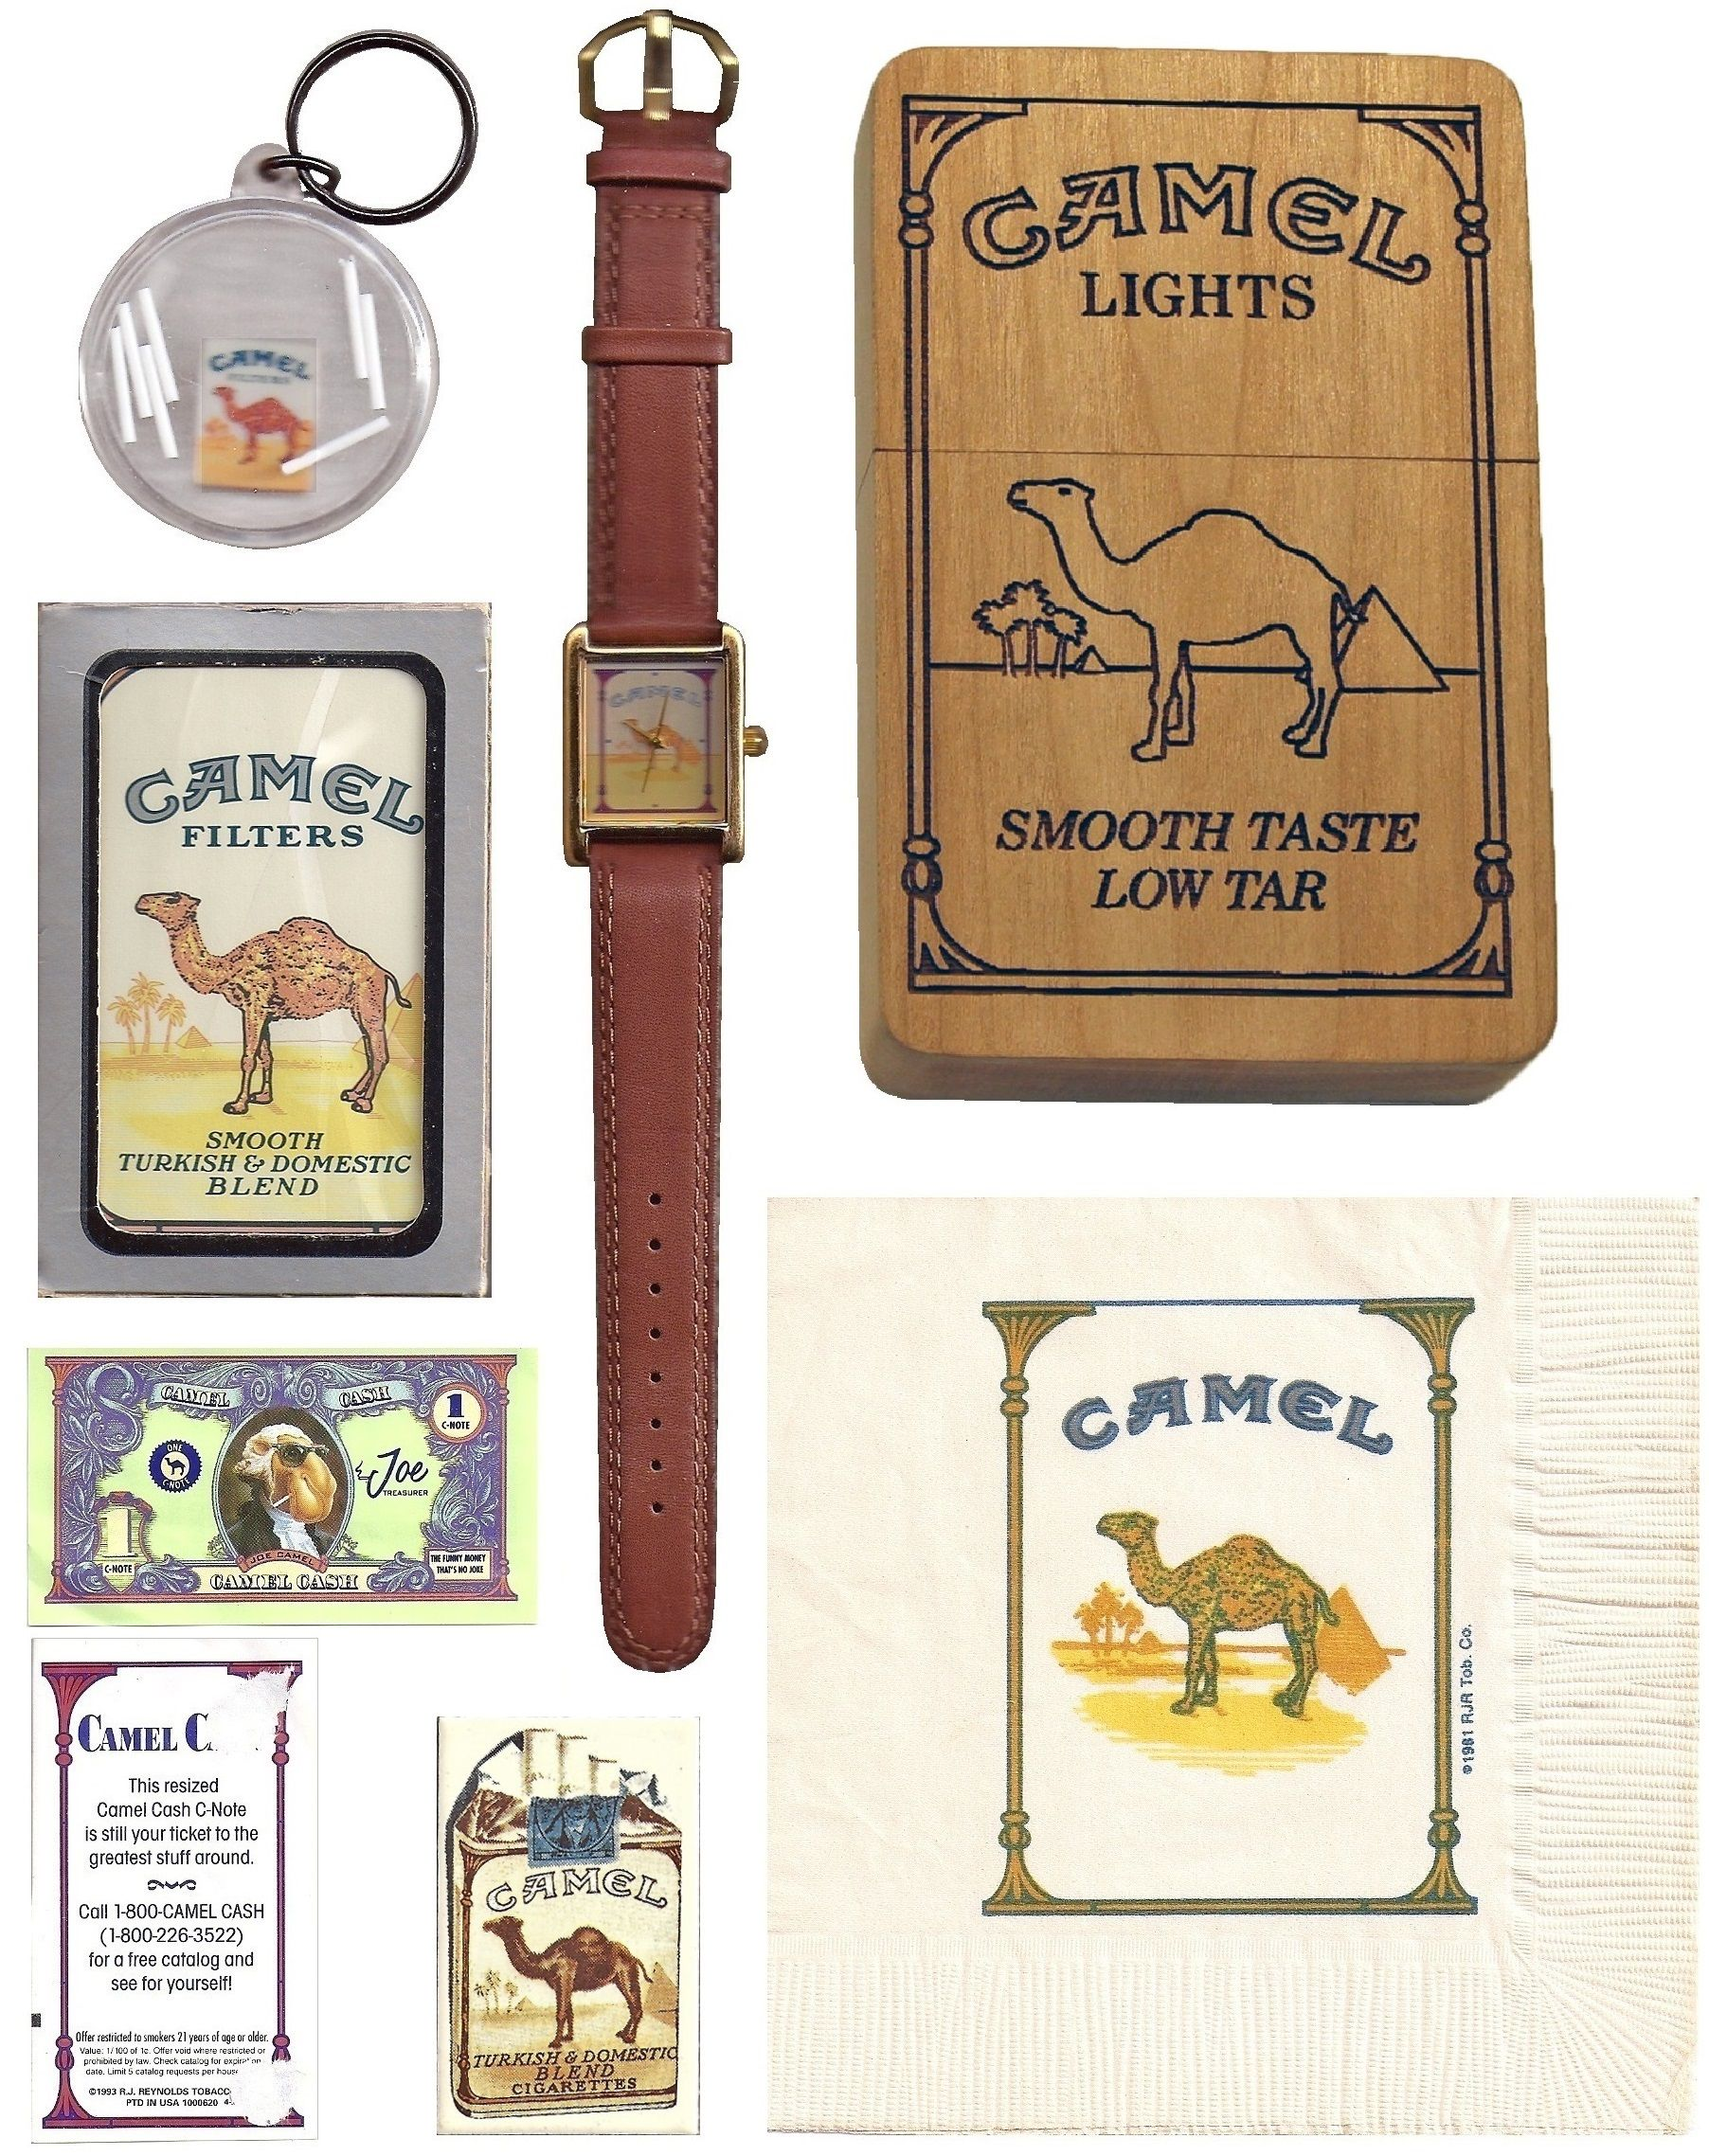 Miscellaneous items No.1 has a keychain game with floating cigarettes that you try to insert back into the pack.  Napkin, refrigerator magnet, deck of cards and watch complete the page